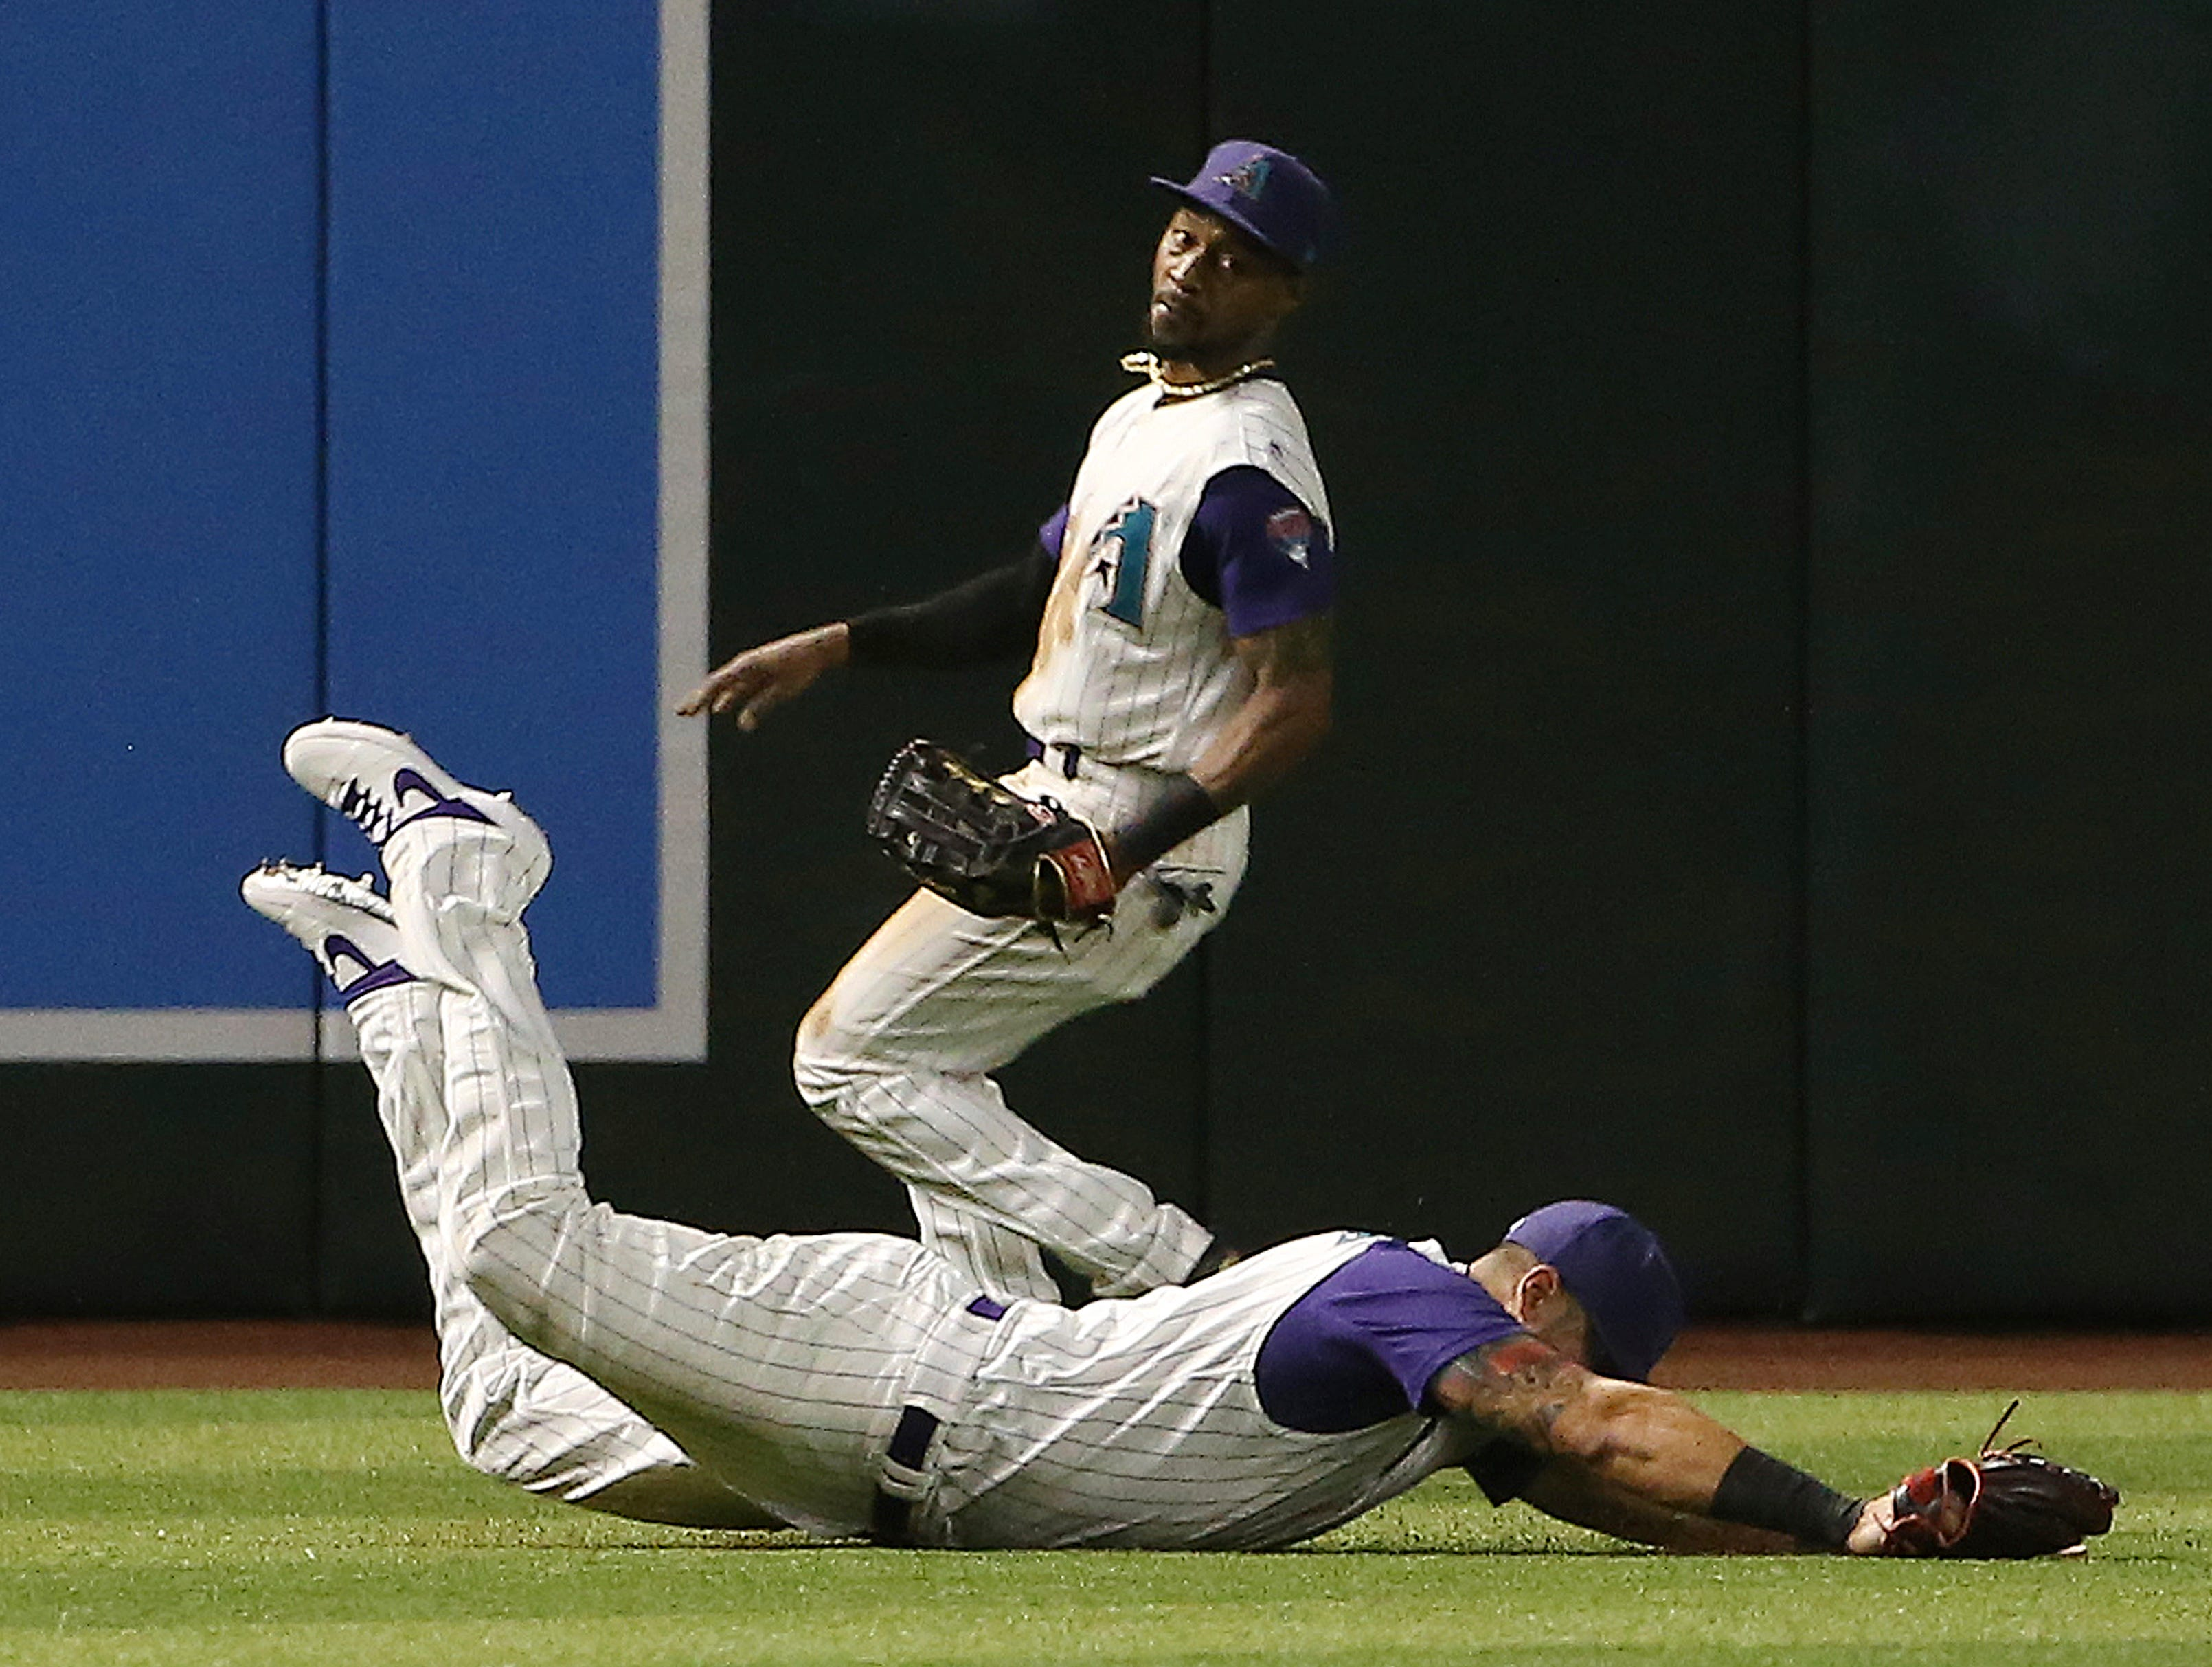 Arizona Diamondbacks left fielder David Peralta, front, makes a diving catch on a line drive hit by Atlanta Braves' Nick Markakis, while center fielder Jarrod Dyson, back, watches during the seventh inning of a baseball game Thursday, May 9, 2019, in Phoenix. (AP Photo/Ross D. Franklin)